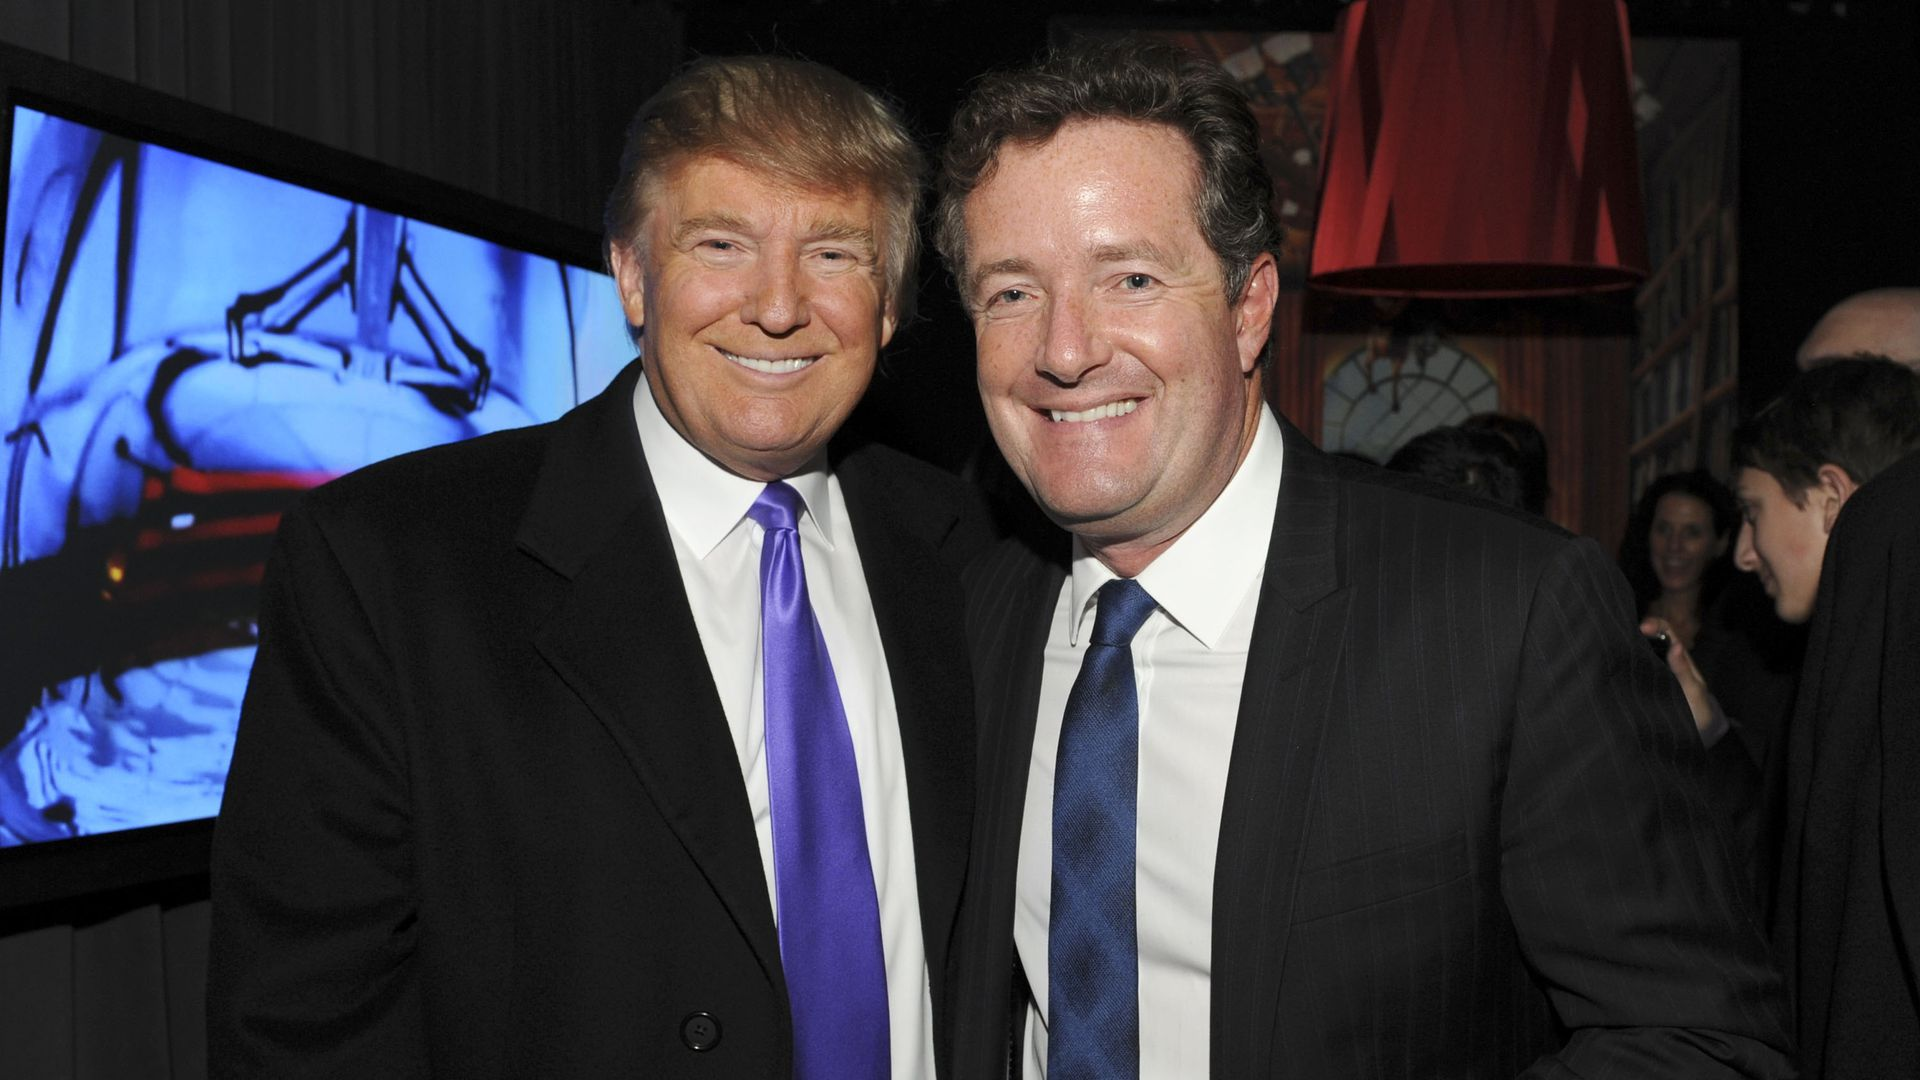 President  Trump and journalist Piers Morgan on November 10, 2010 in New York, New York.